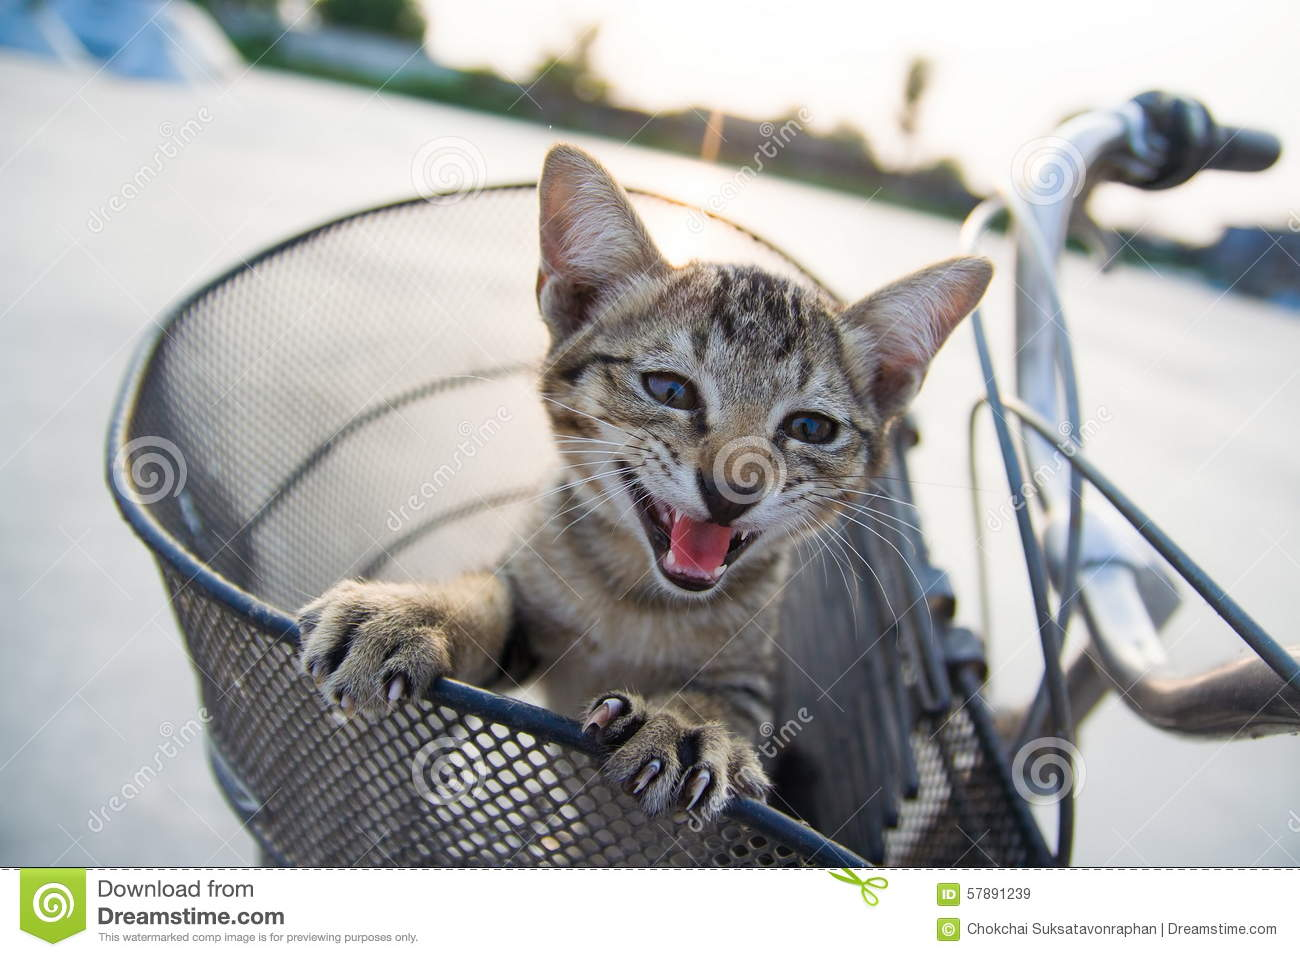 The pussycat in the basket of bicycle.